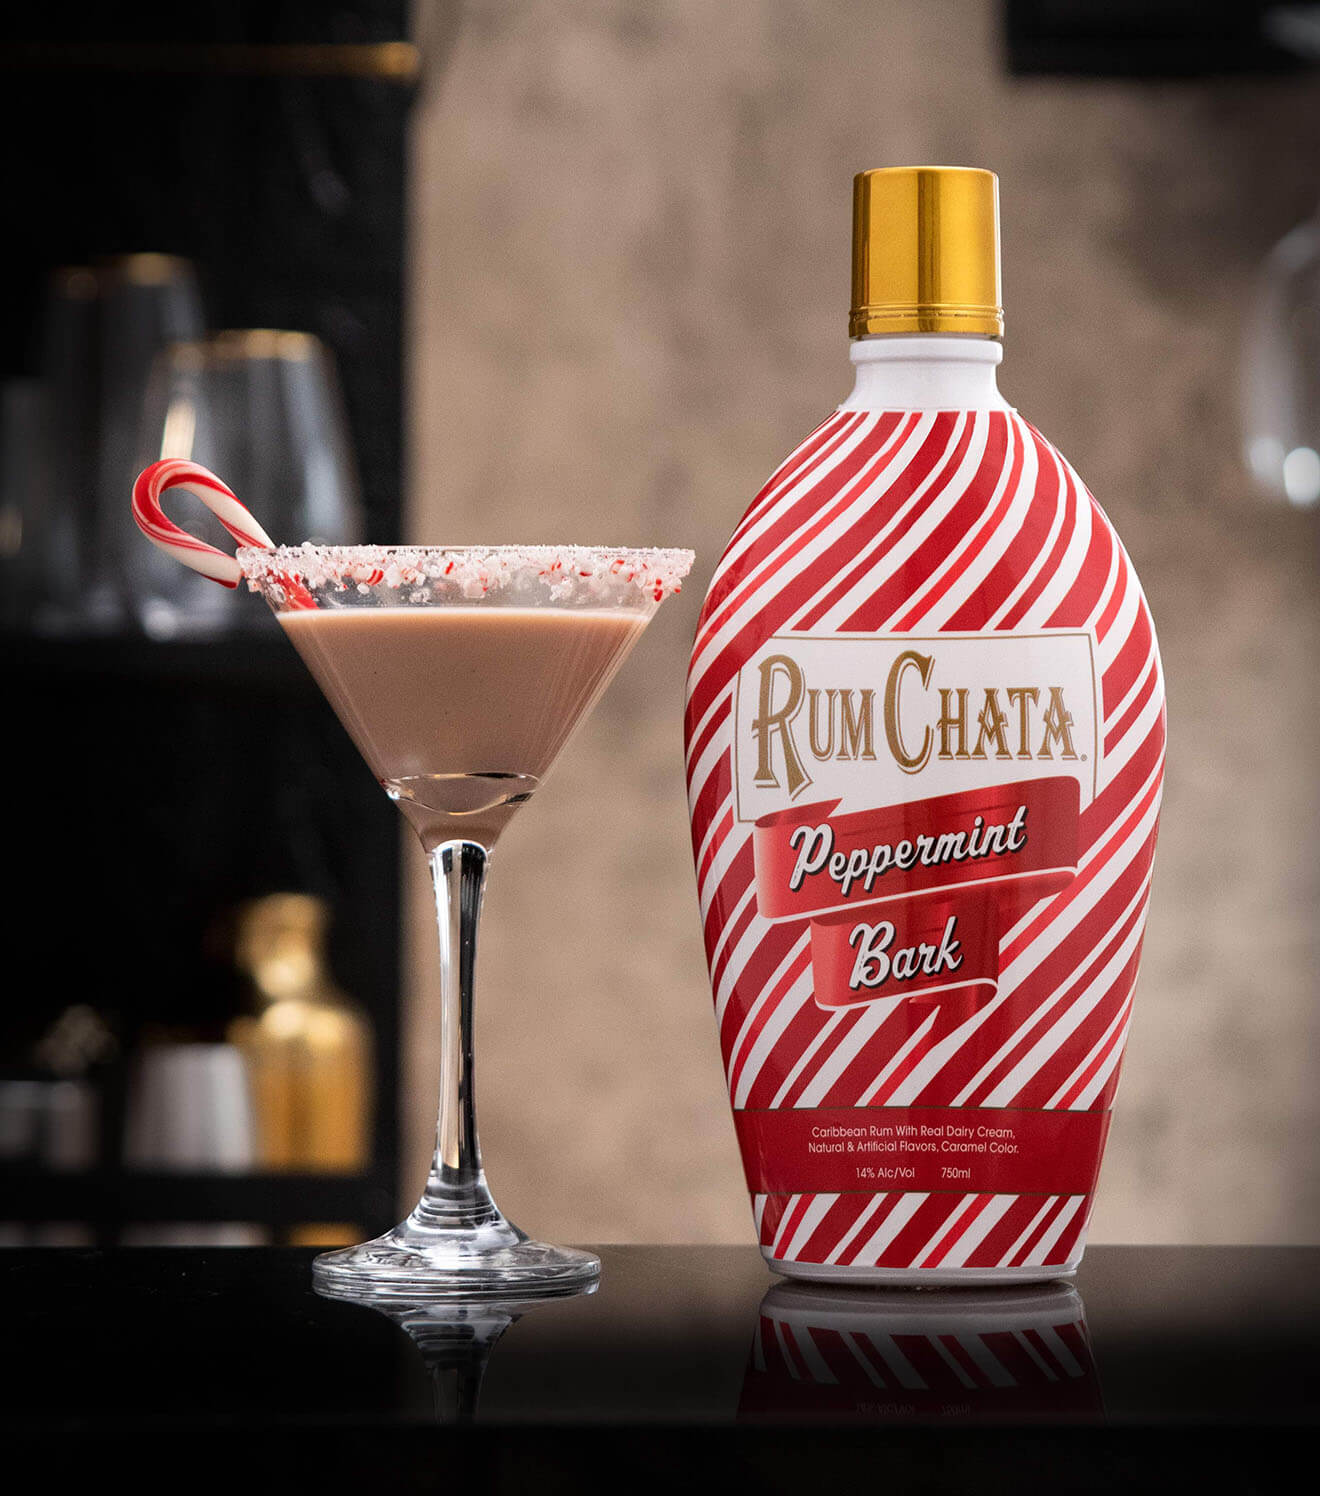 RumChata Peppermint Bark Martini W Bottle